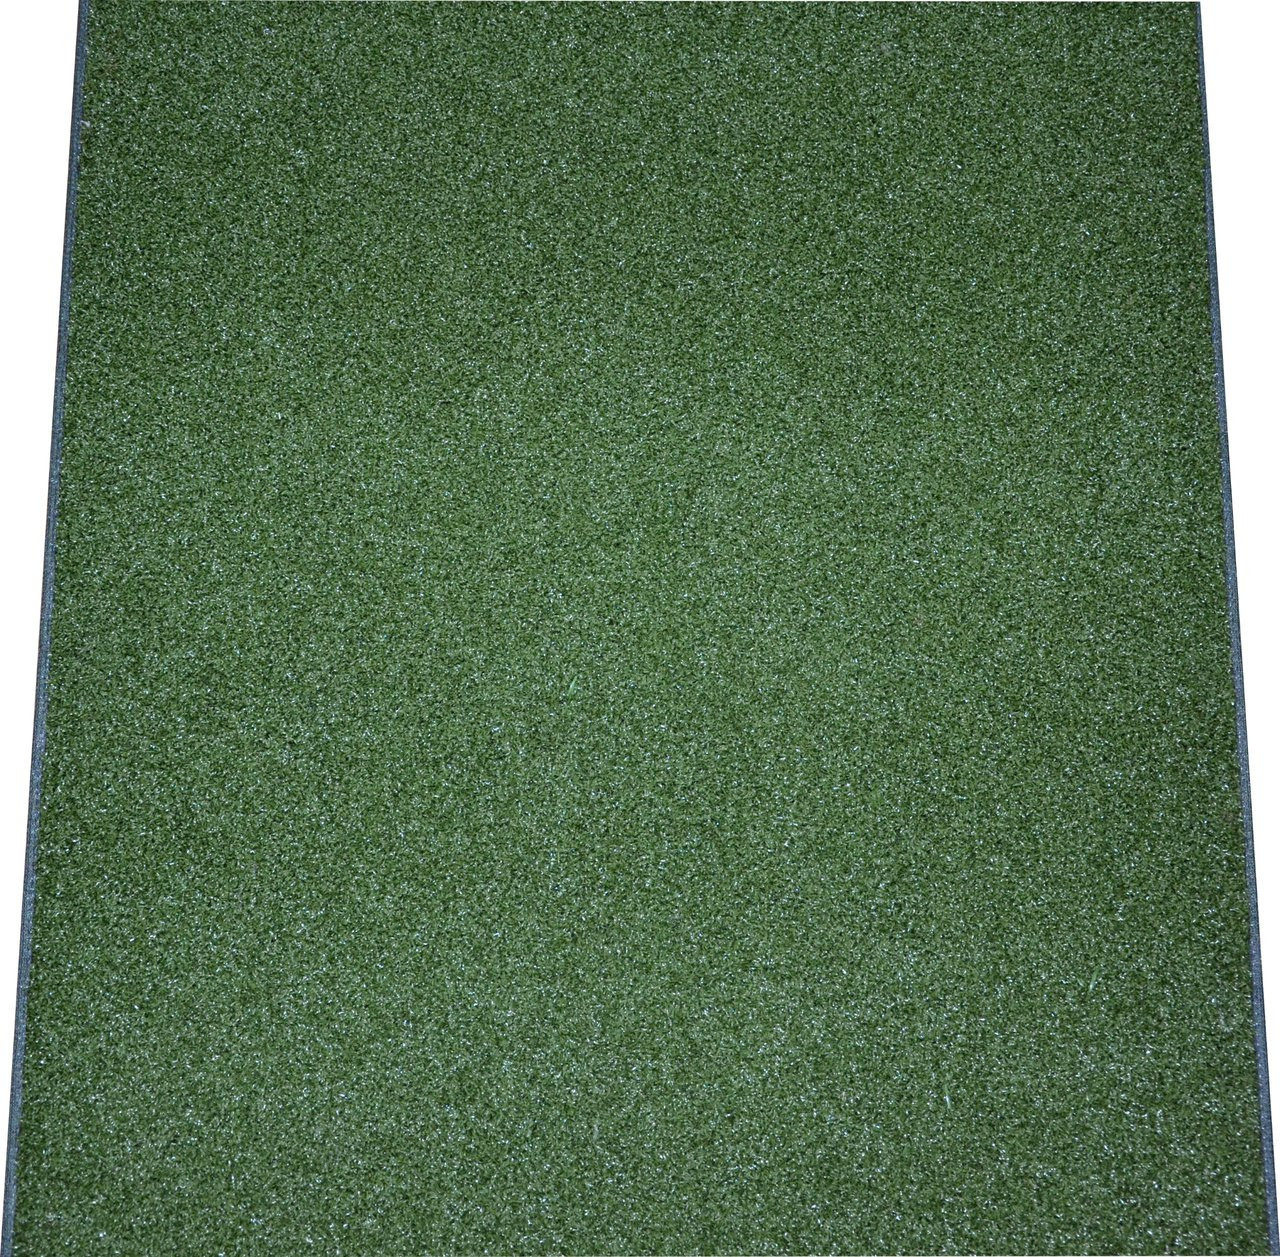 Premium indoor outdoor artificial grass turf mat for Indoor outdoor carpet green